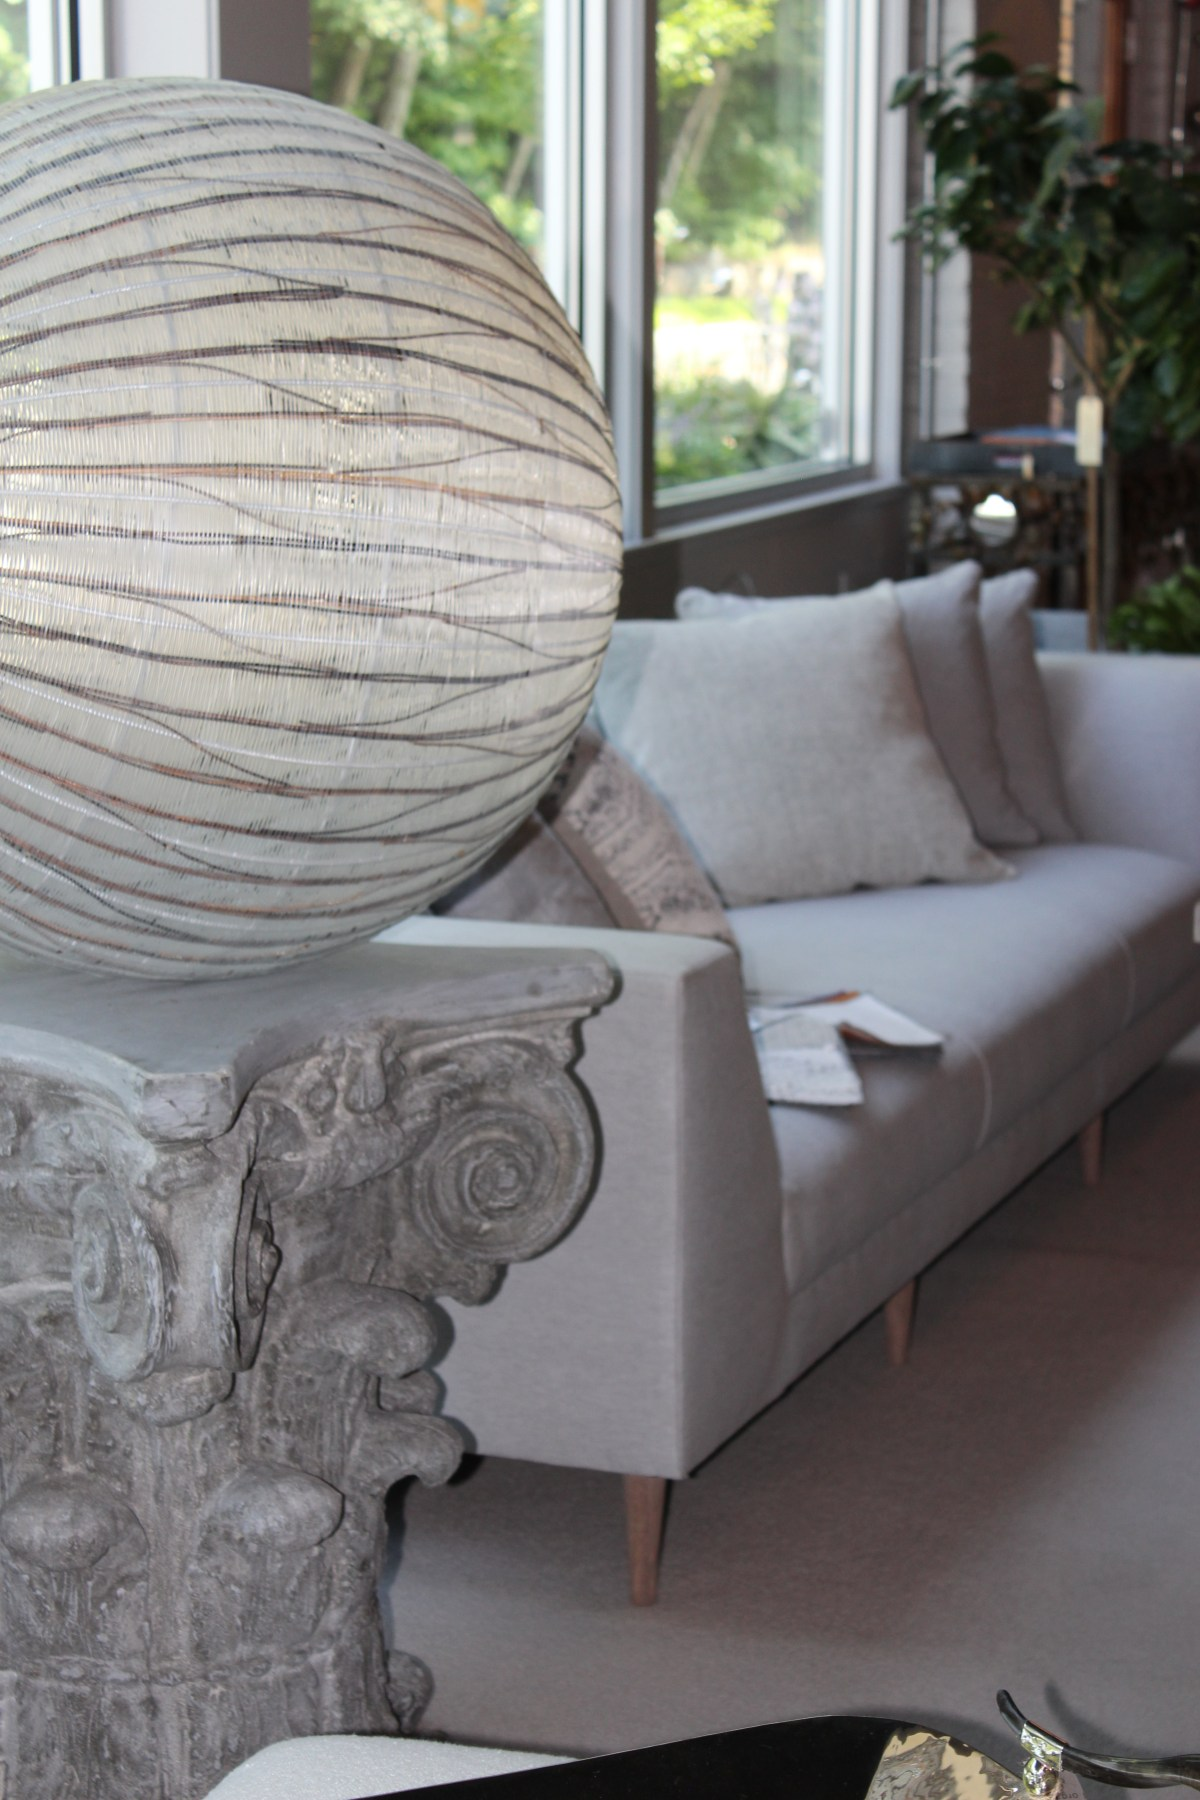 architectural capital-pennoyer newman@artefacthome